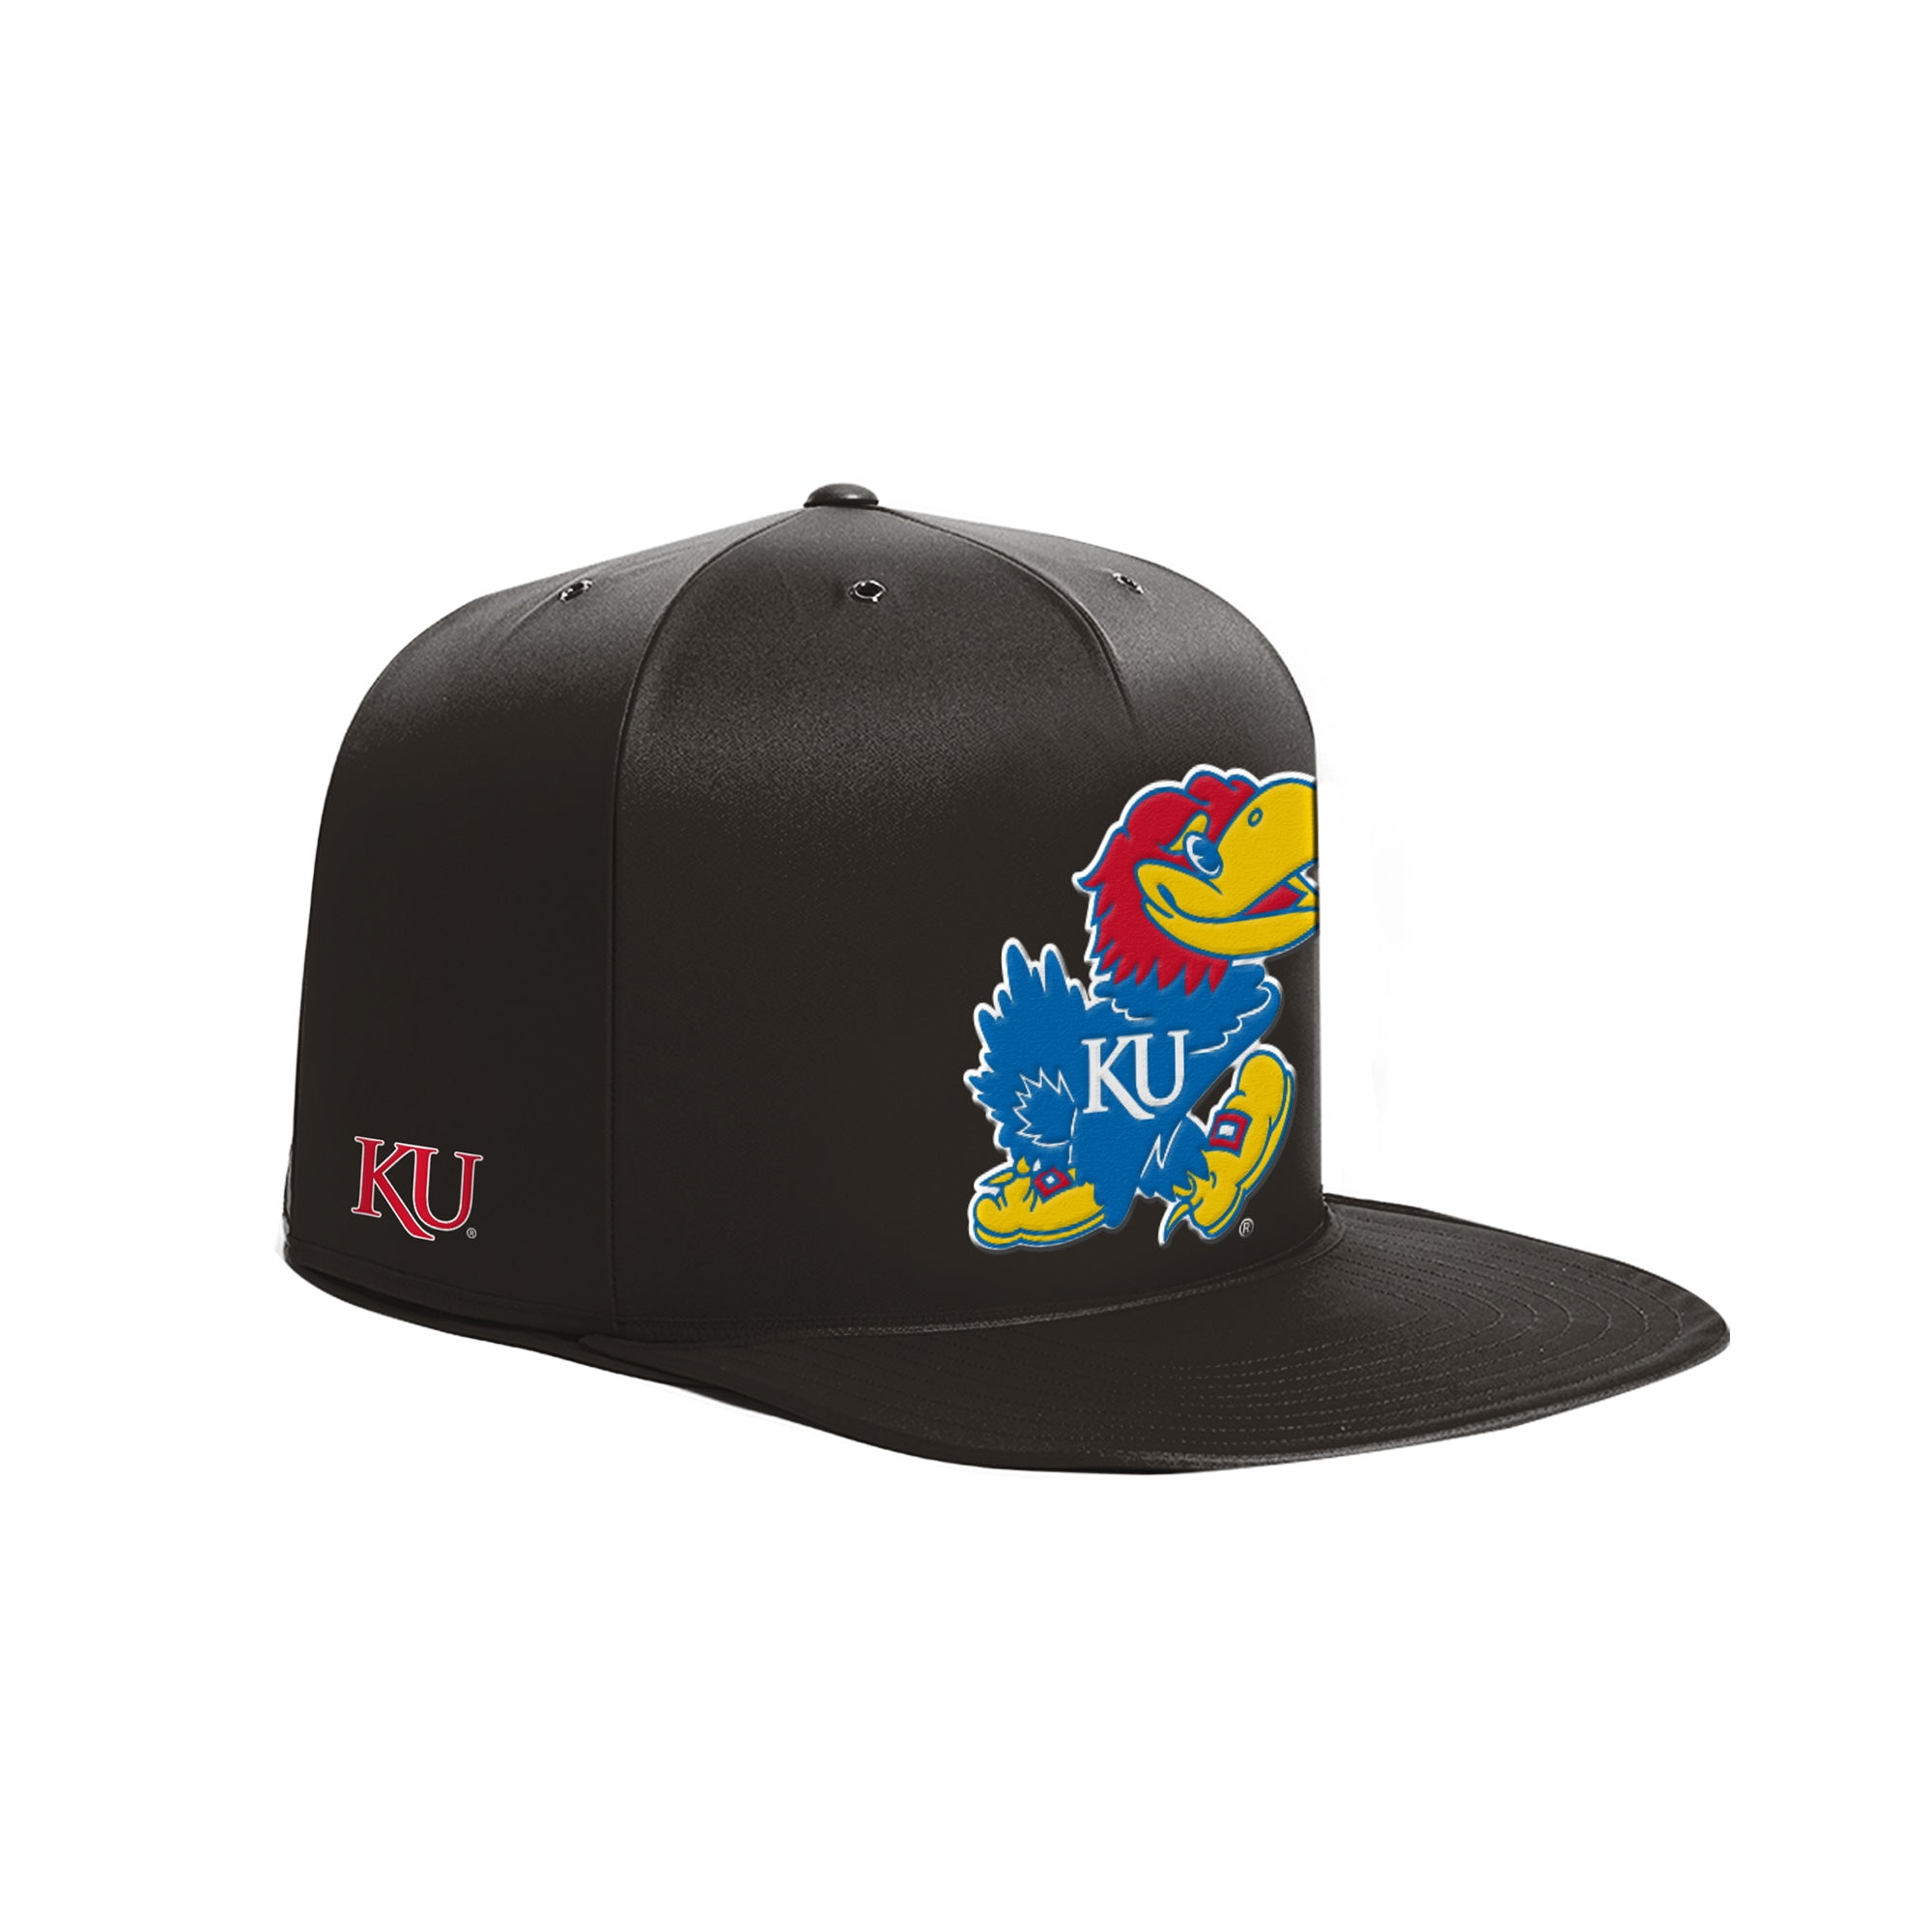 Nap Cap - University of Kansas - Pet Bed